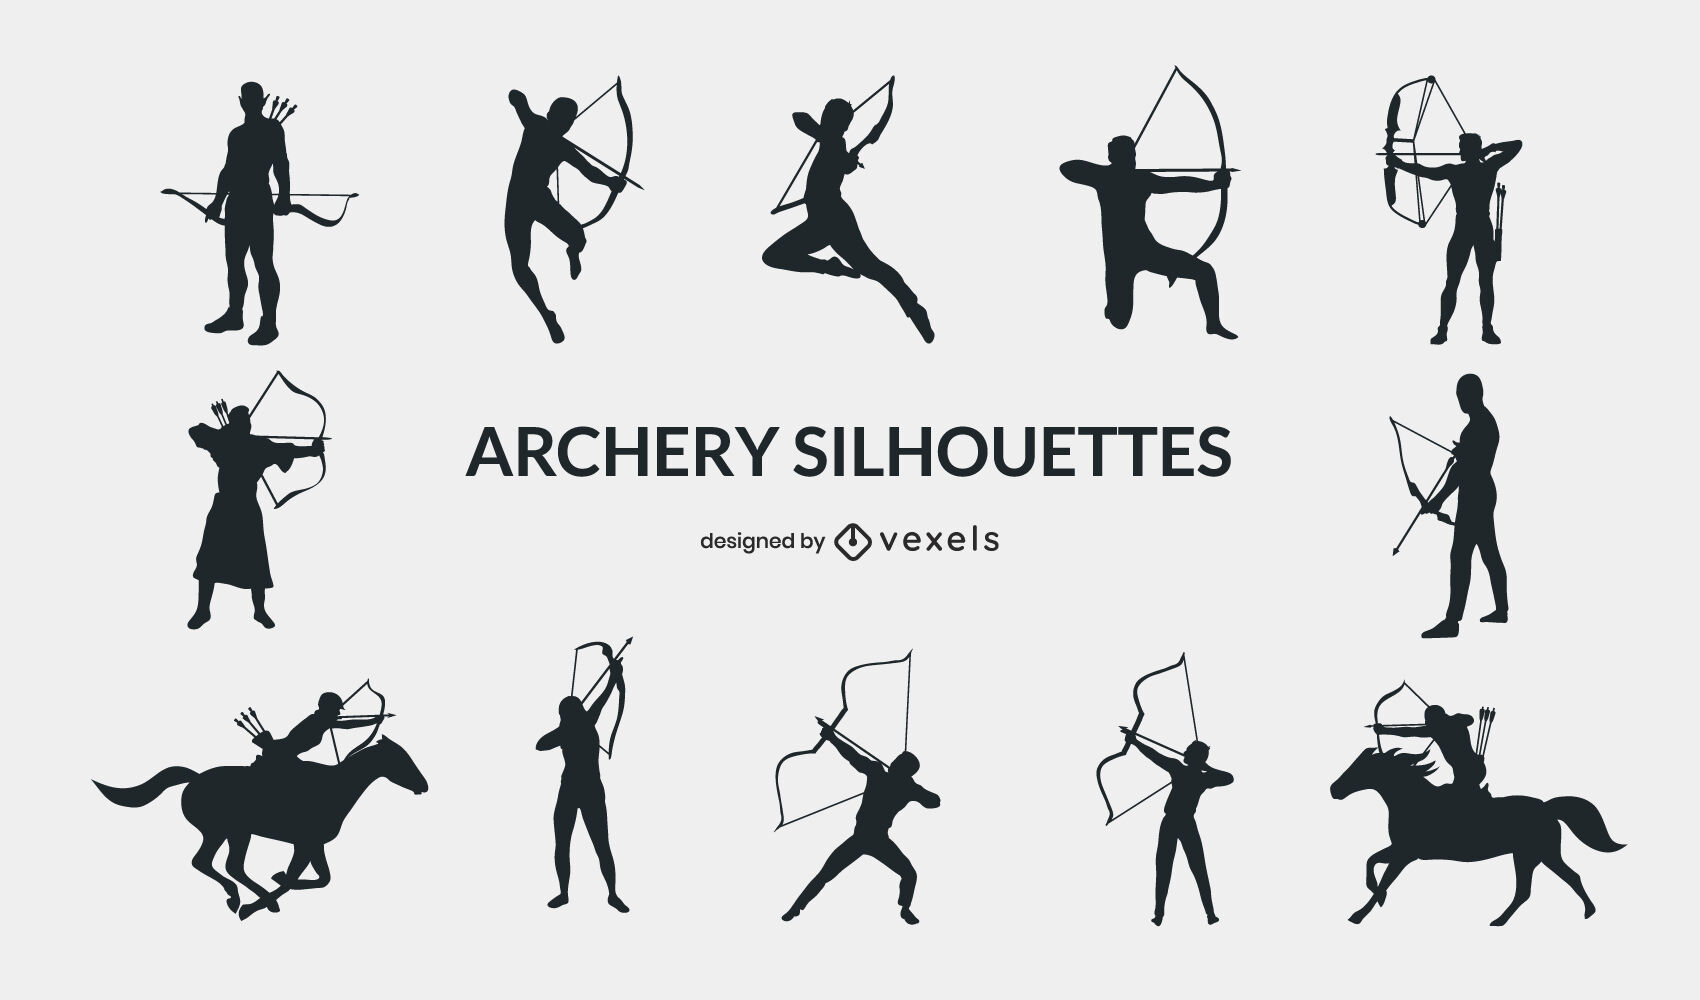 Archery sport people poses silhouette set